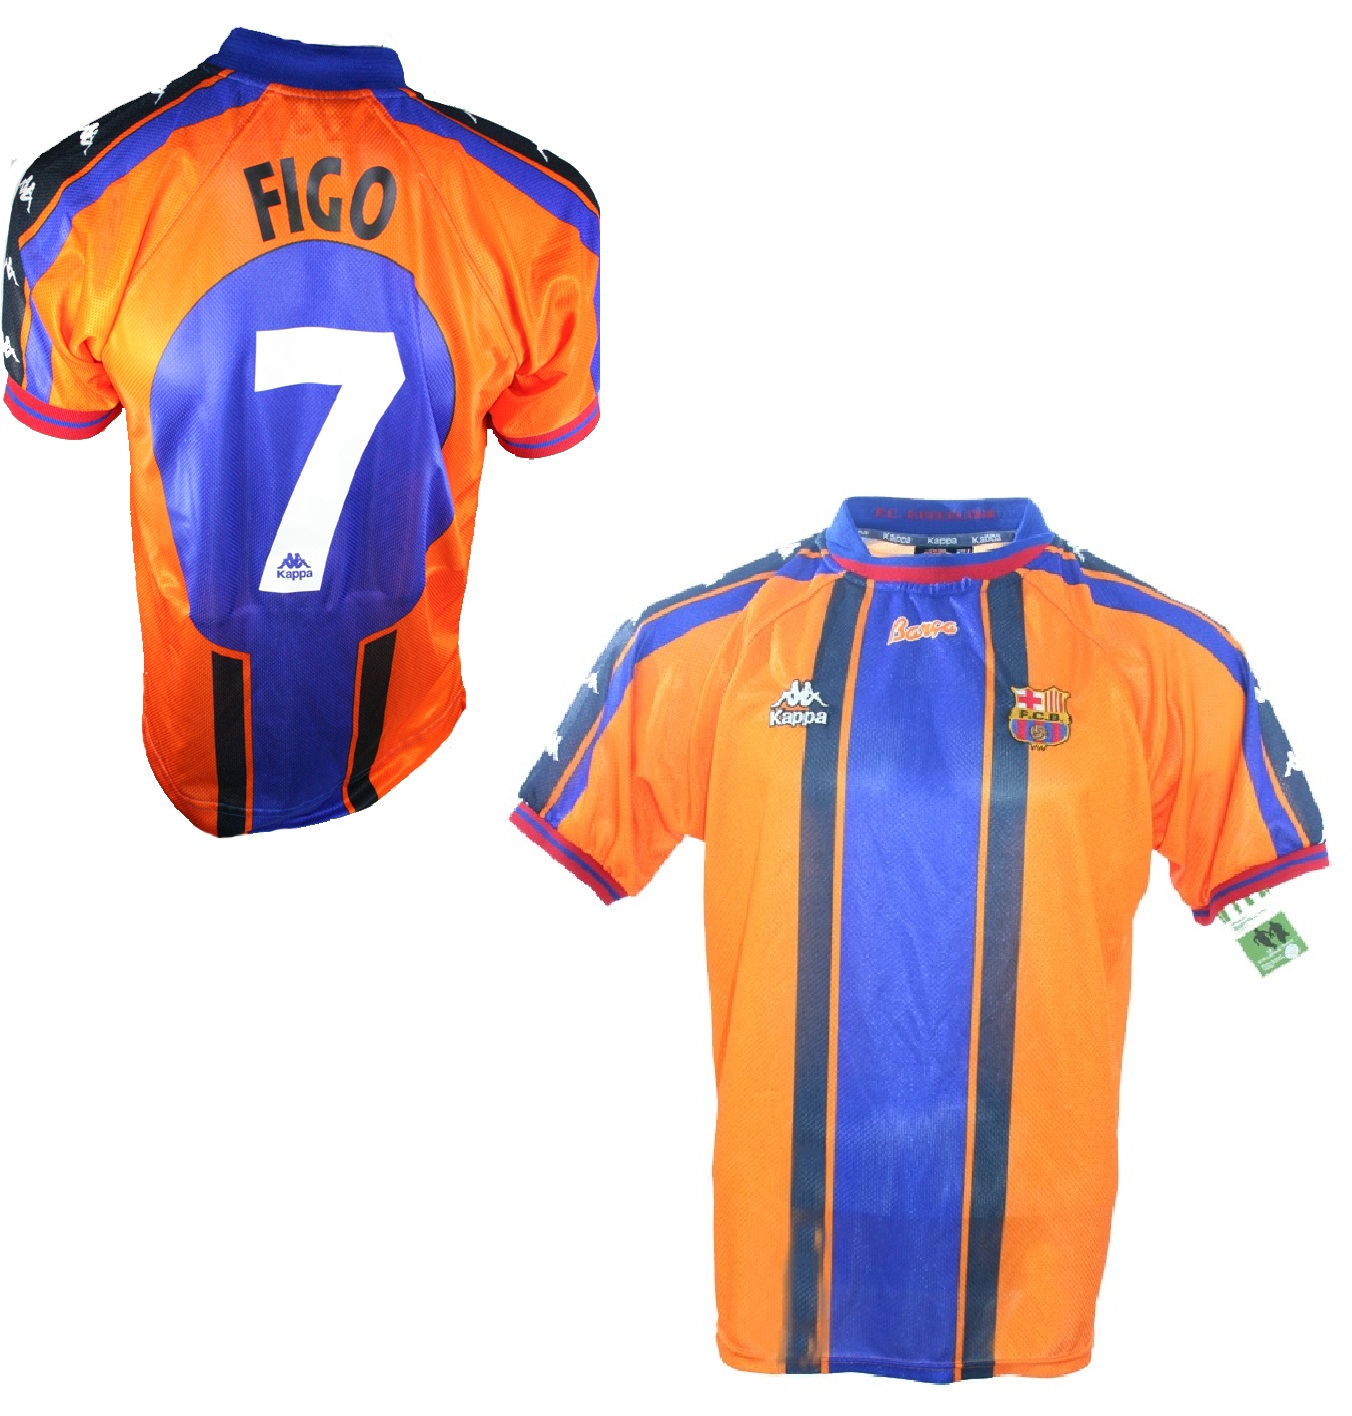 new concept 9c971 b2b0a Kappa FC Barcelona jersey 7 Luis Figo 1997/98 Away orange ...